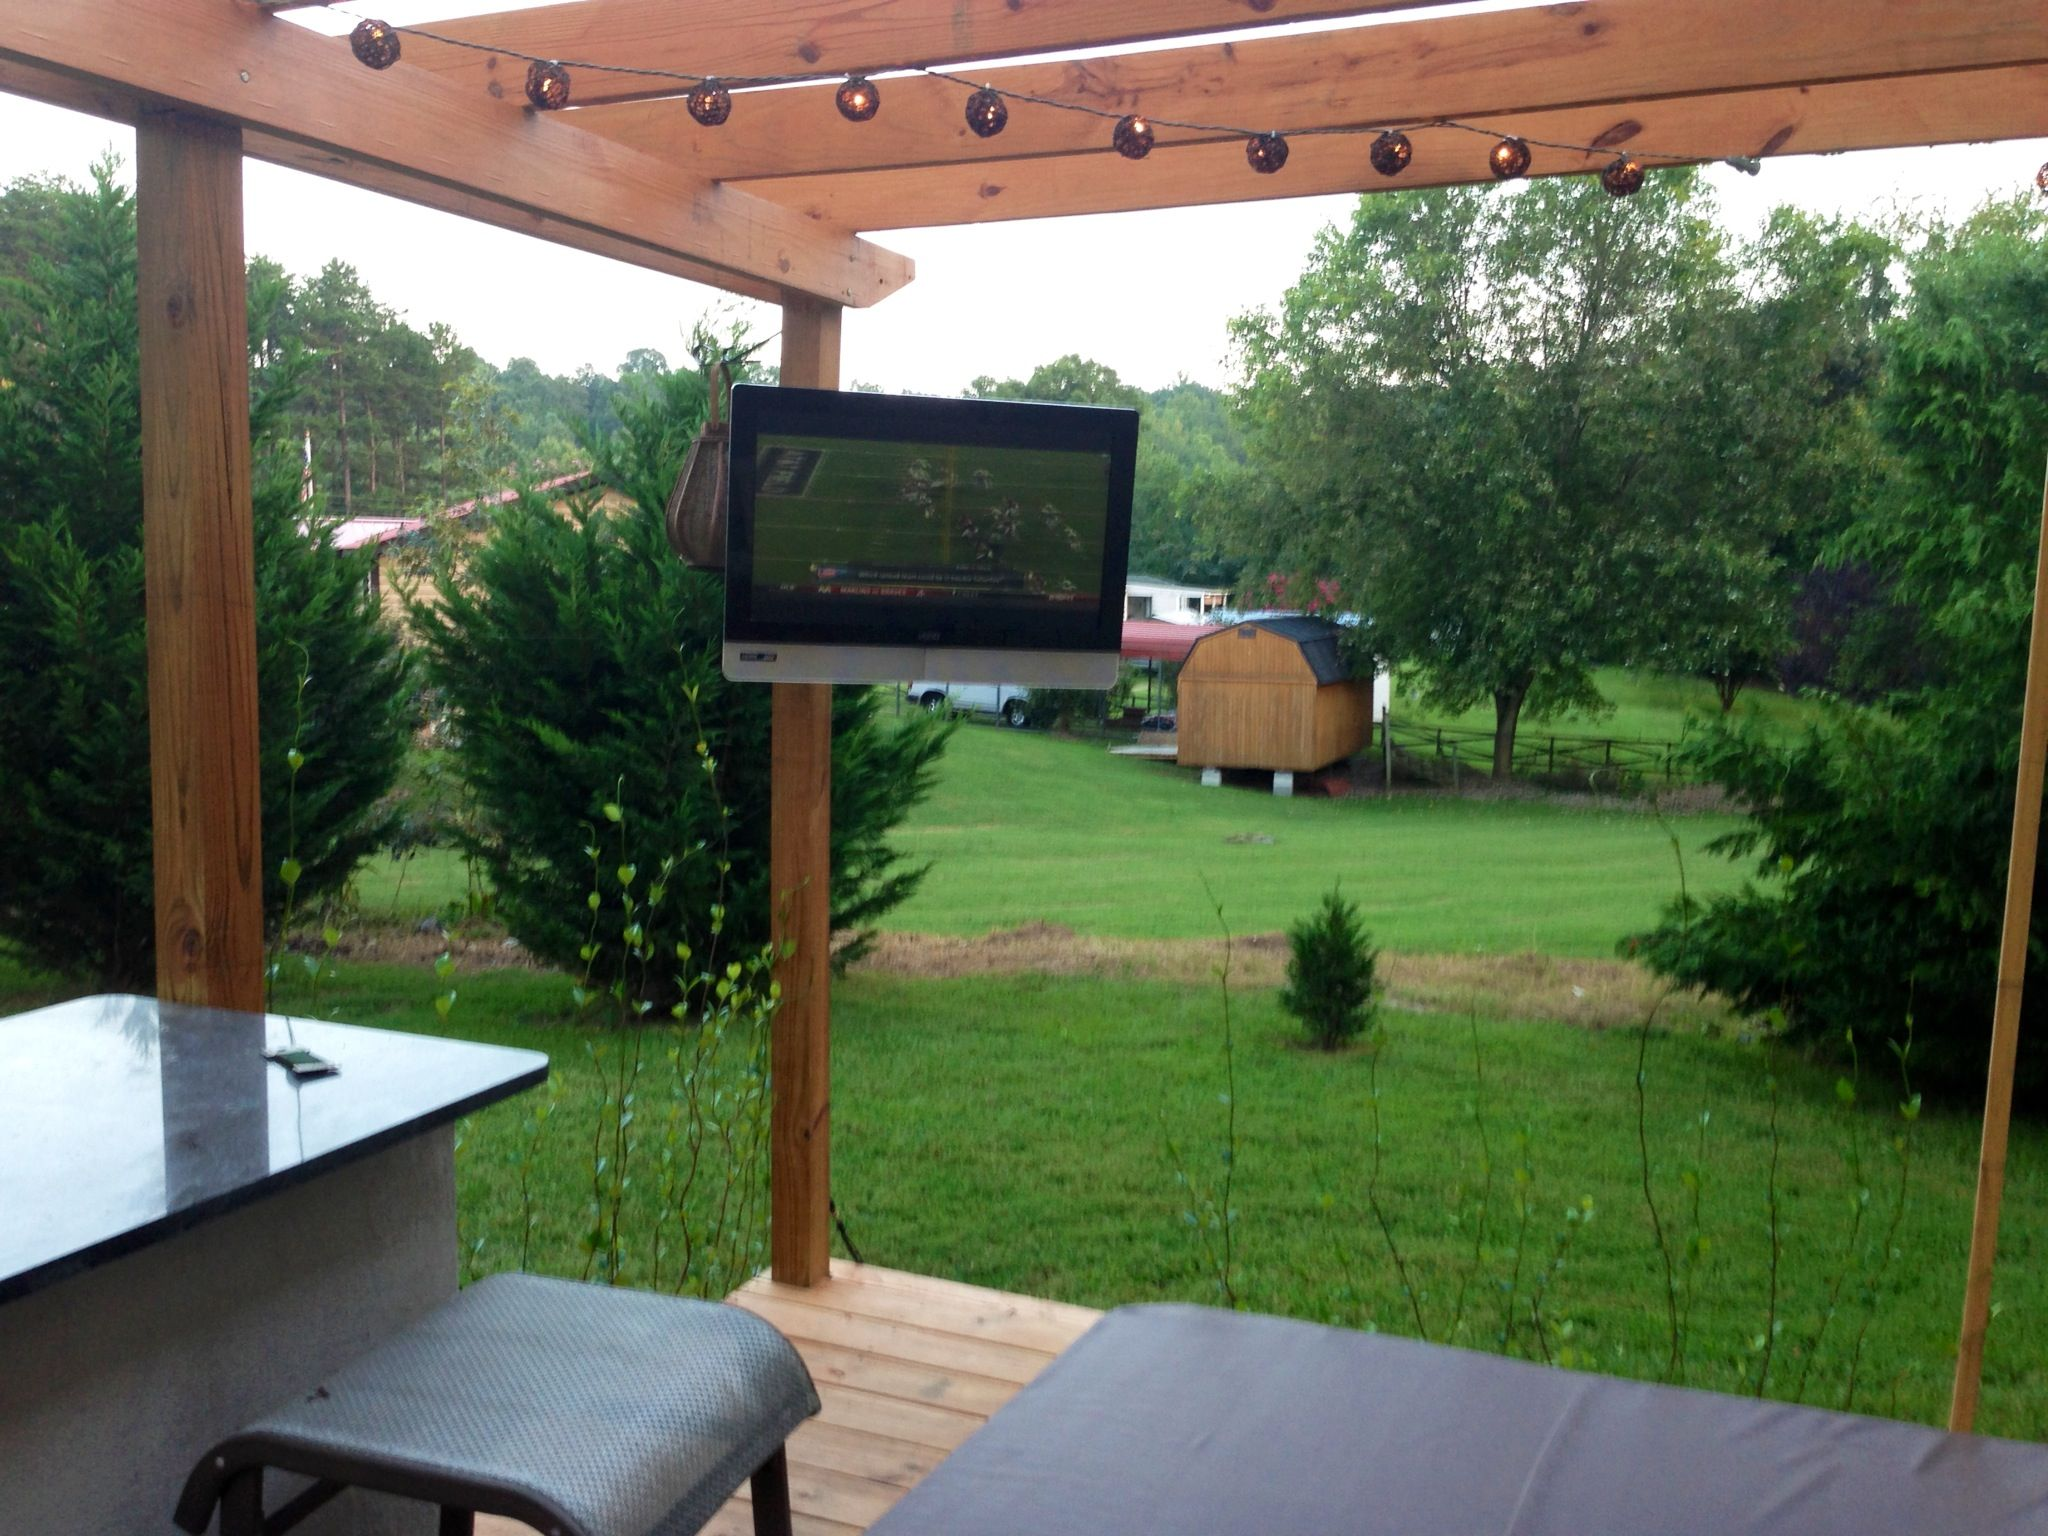 outdoor tv on new deck. sunken in hot tub. bar. | new deck ... - Patio Tv Ideas